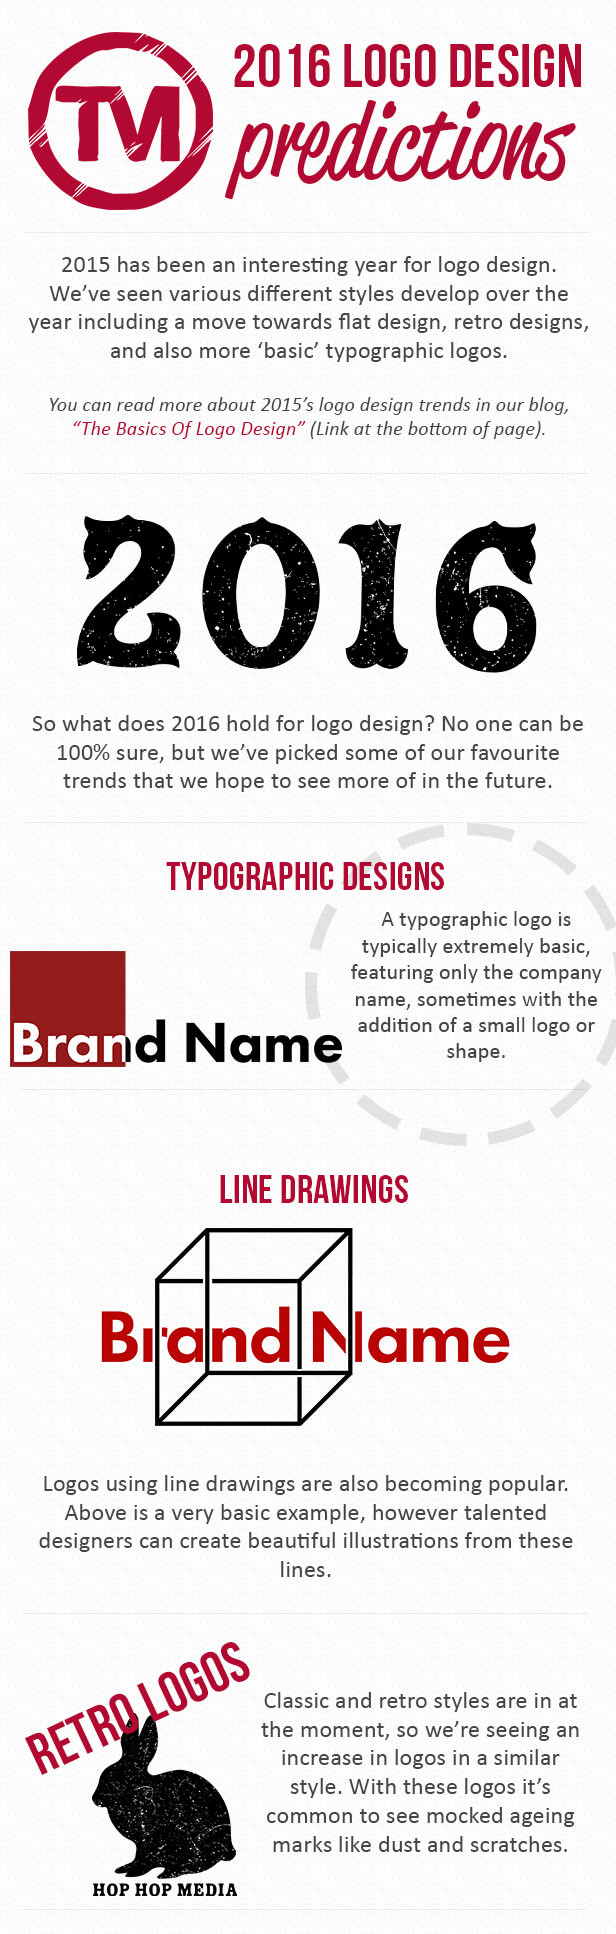 An infographic by Total Merchandise about the top logo design trends of 2016.